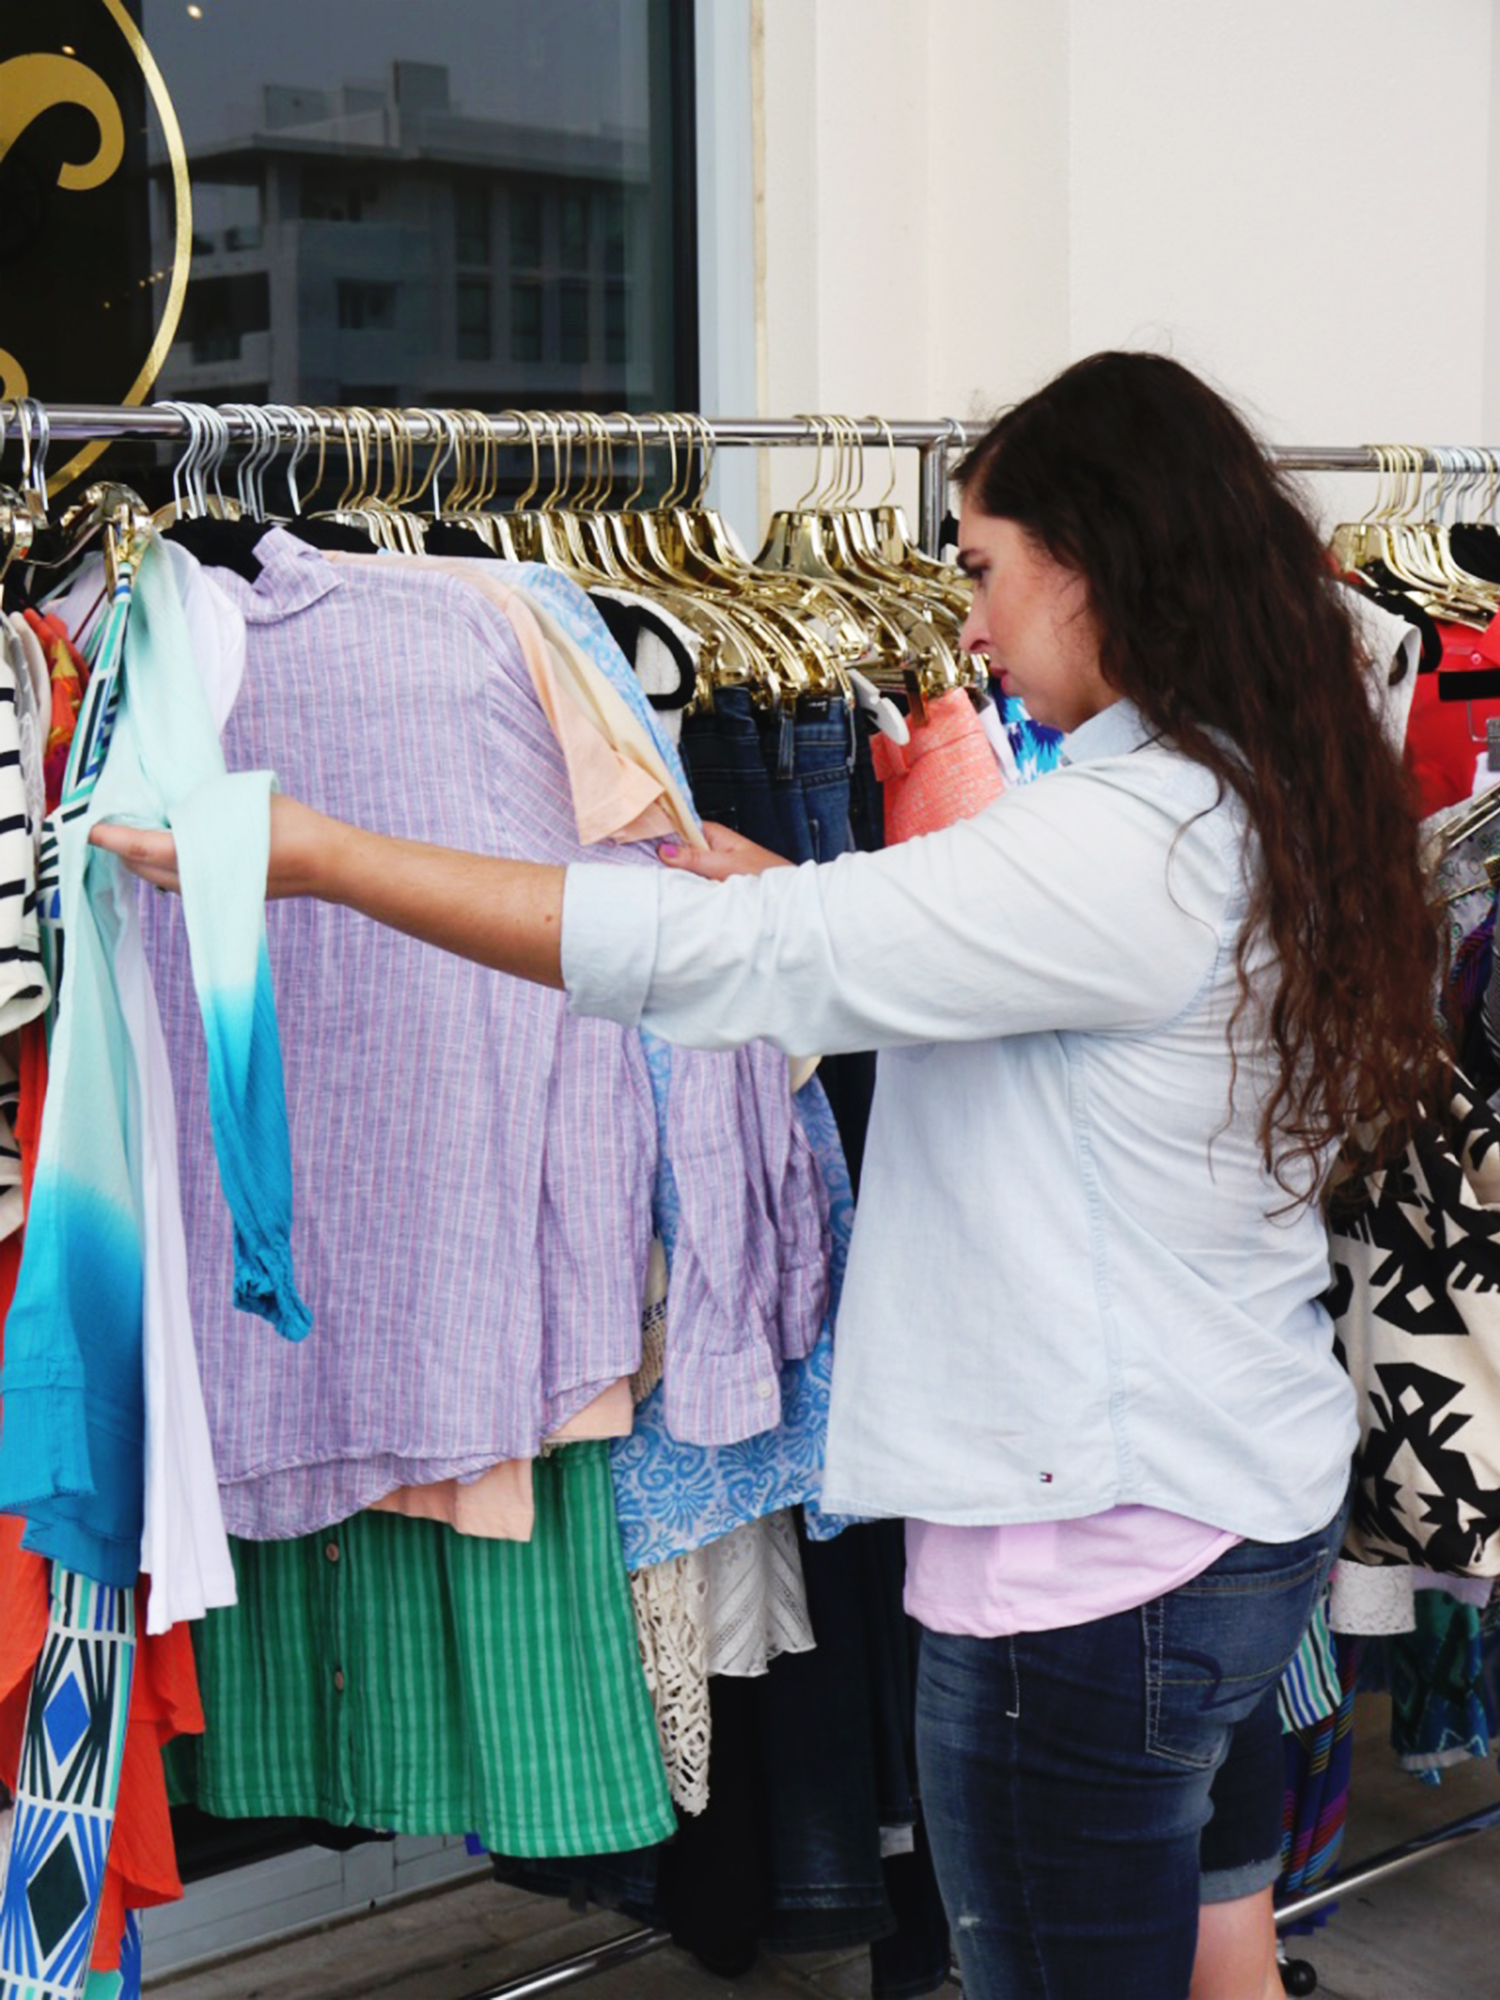 willow_seagrove_shopping_res72.jpg